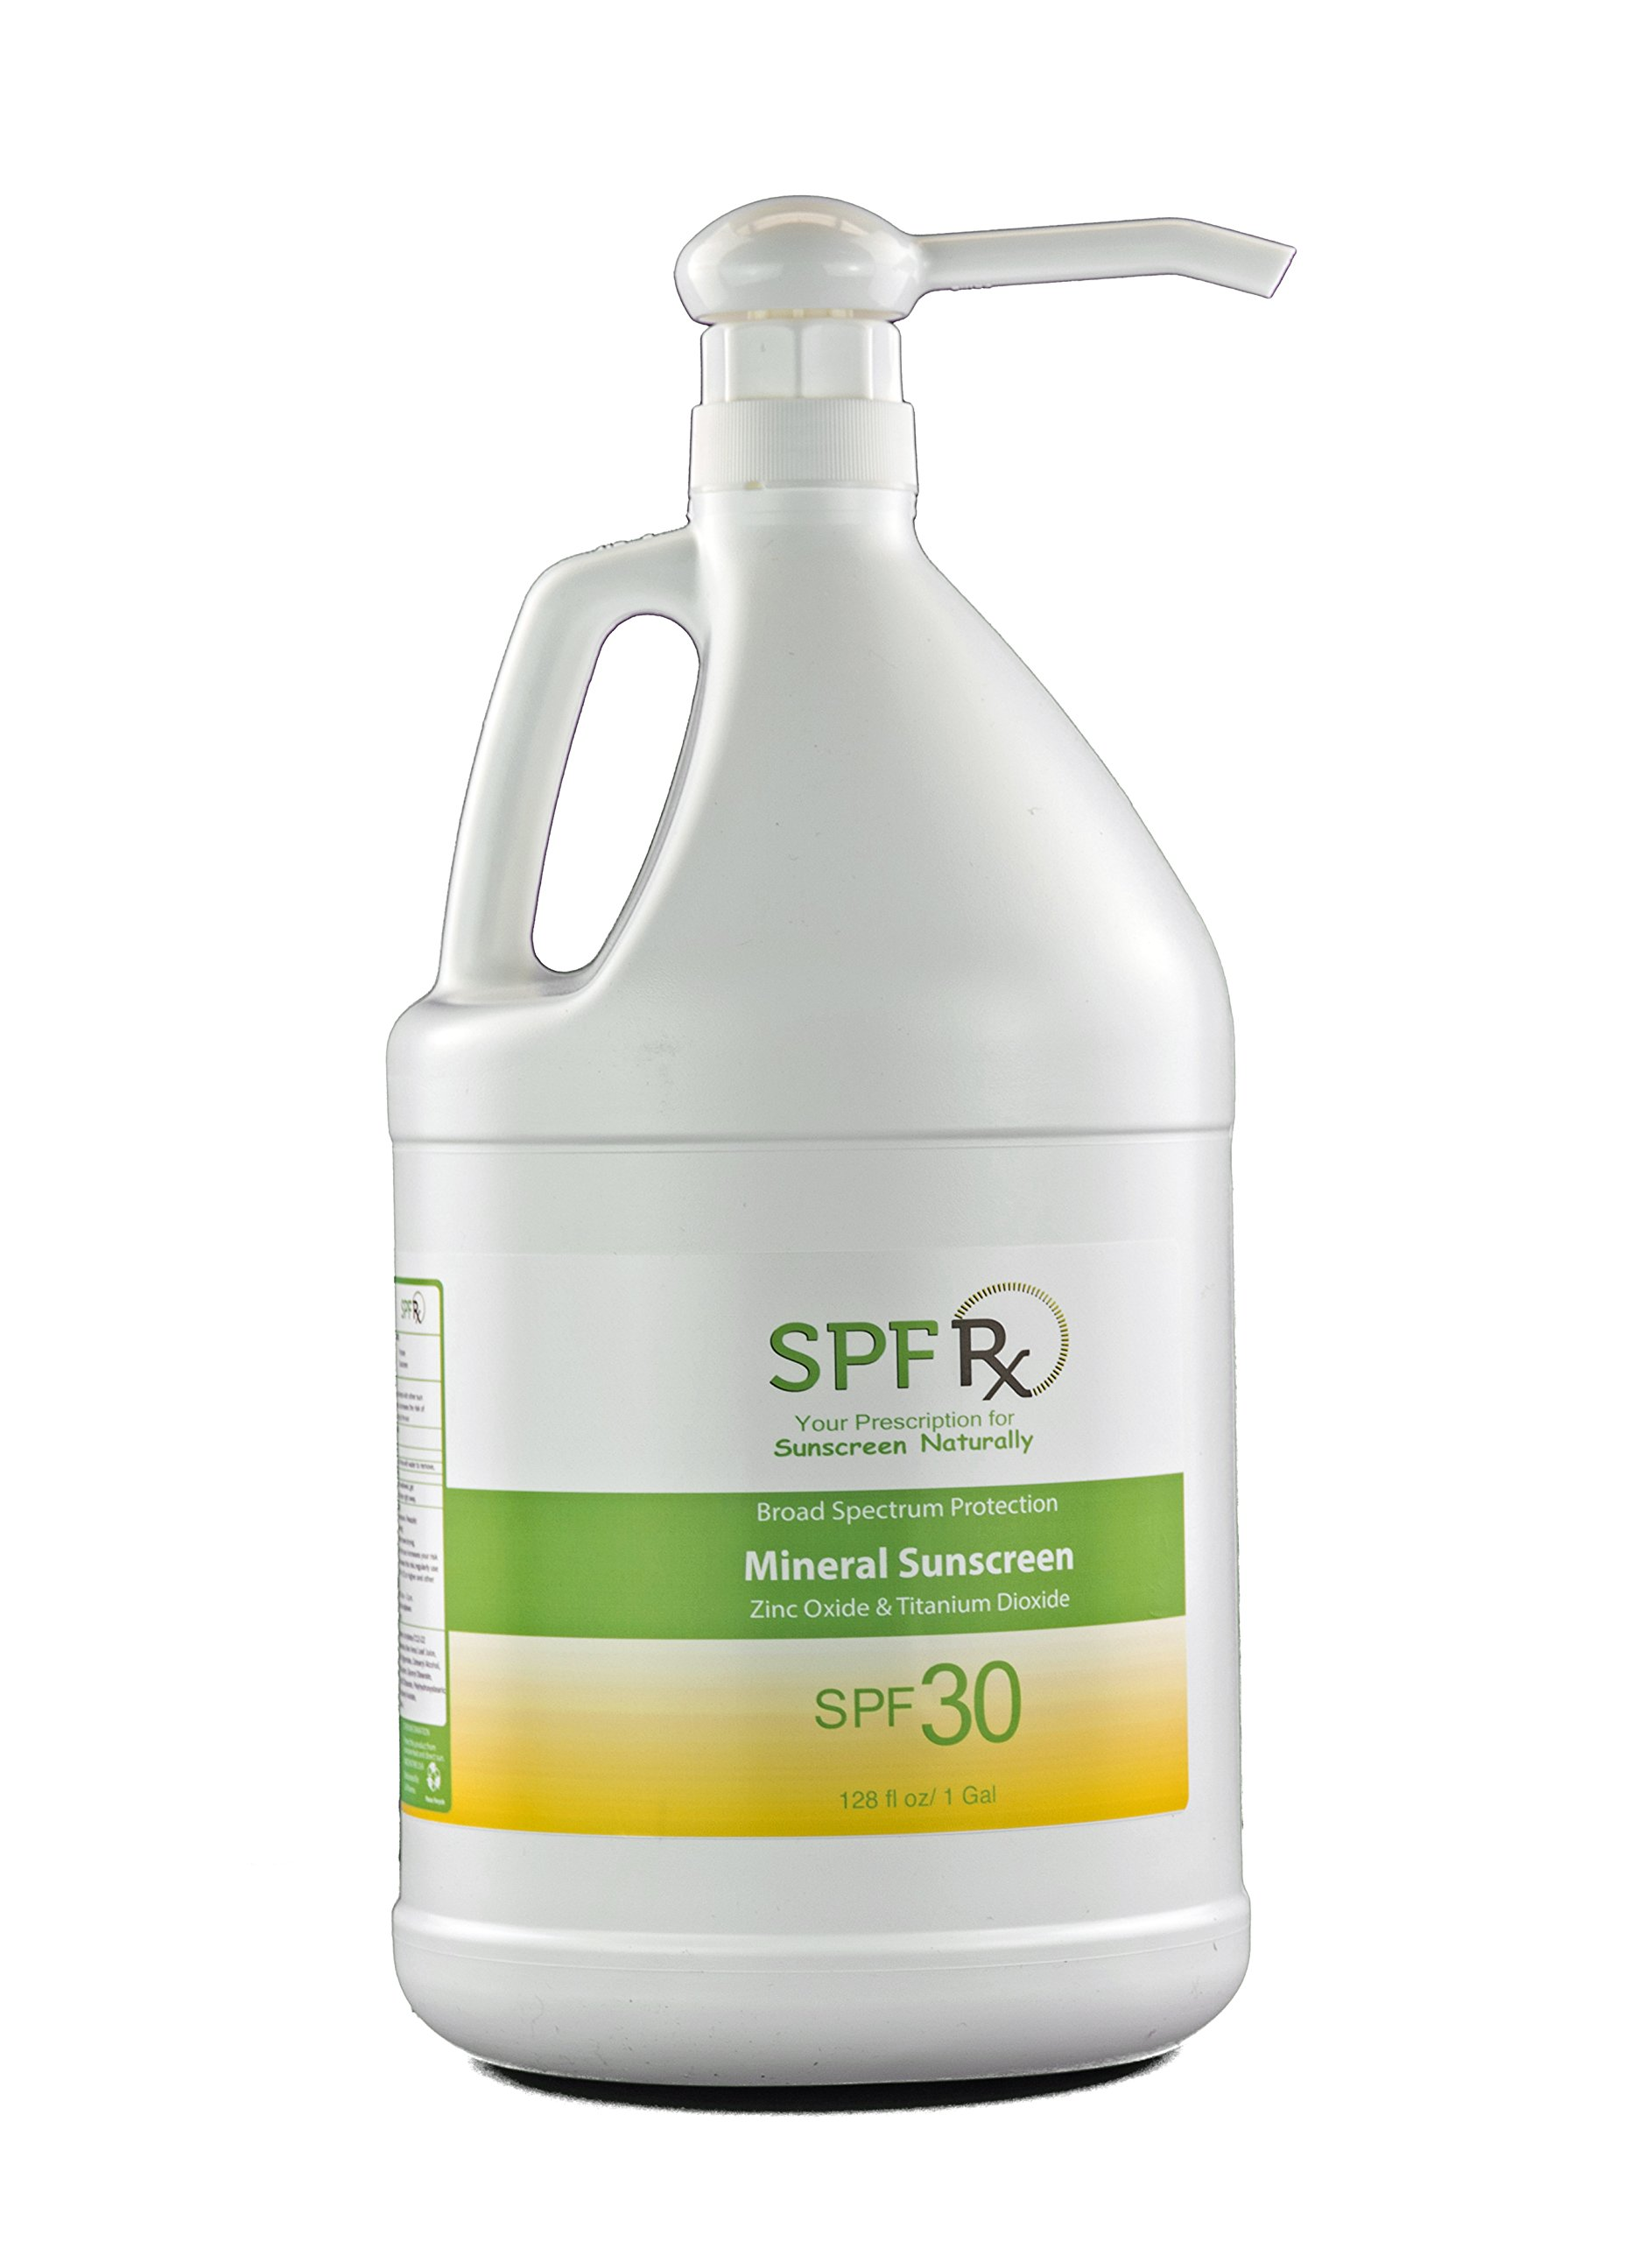 SPF Rx Natural Facial and Body Sunscreen SPF 30 with Zinc Oxide & Titanium Dioxide Mineral Based Sunblock, 1 Gallon